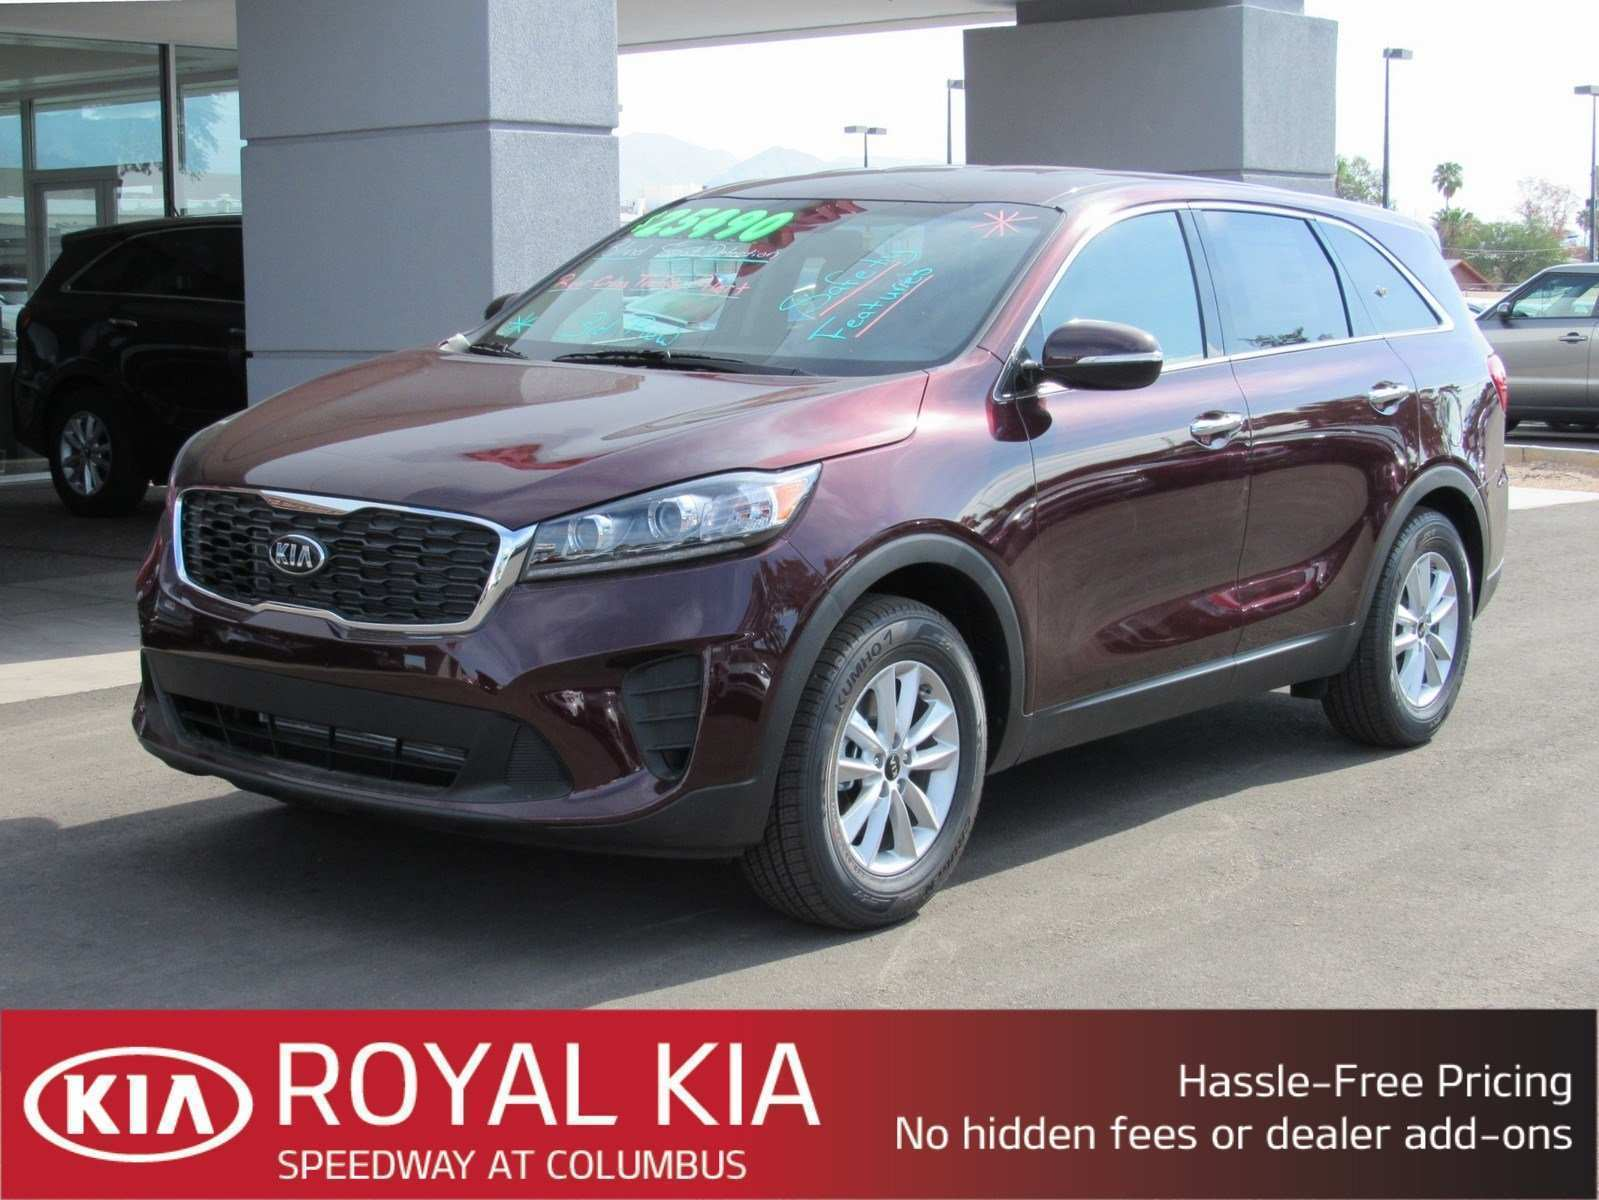 69 The Best 2019 Kia Sorento Trim Levels Photos